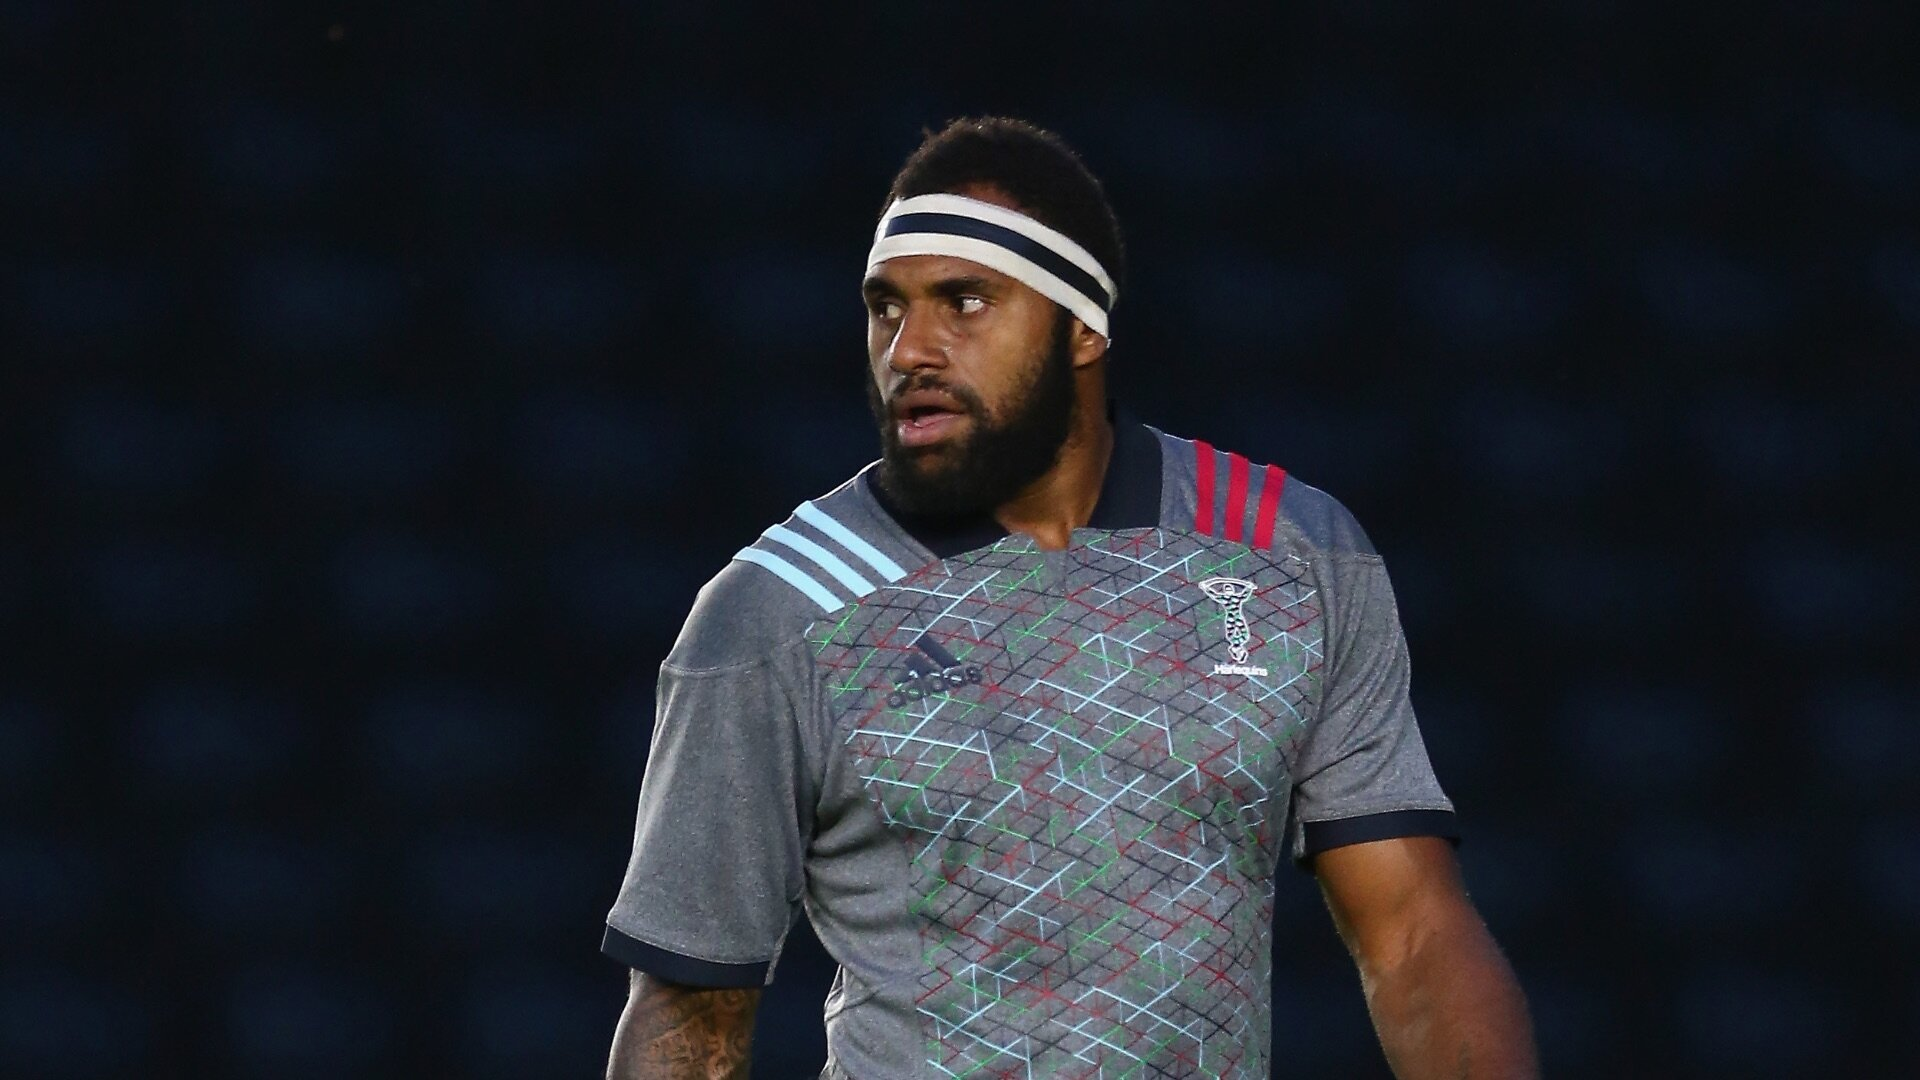 Fijian Kunatani quits Harlequins to become one of 13 new signings at Castres